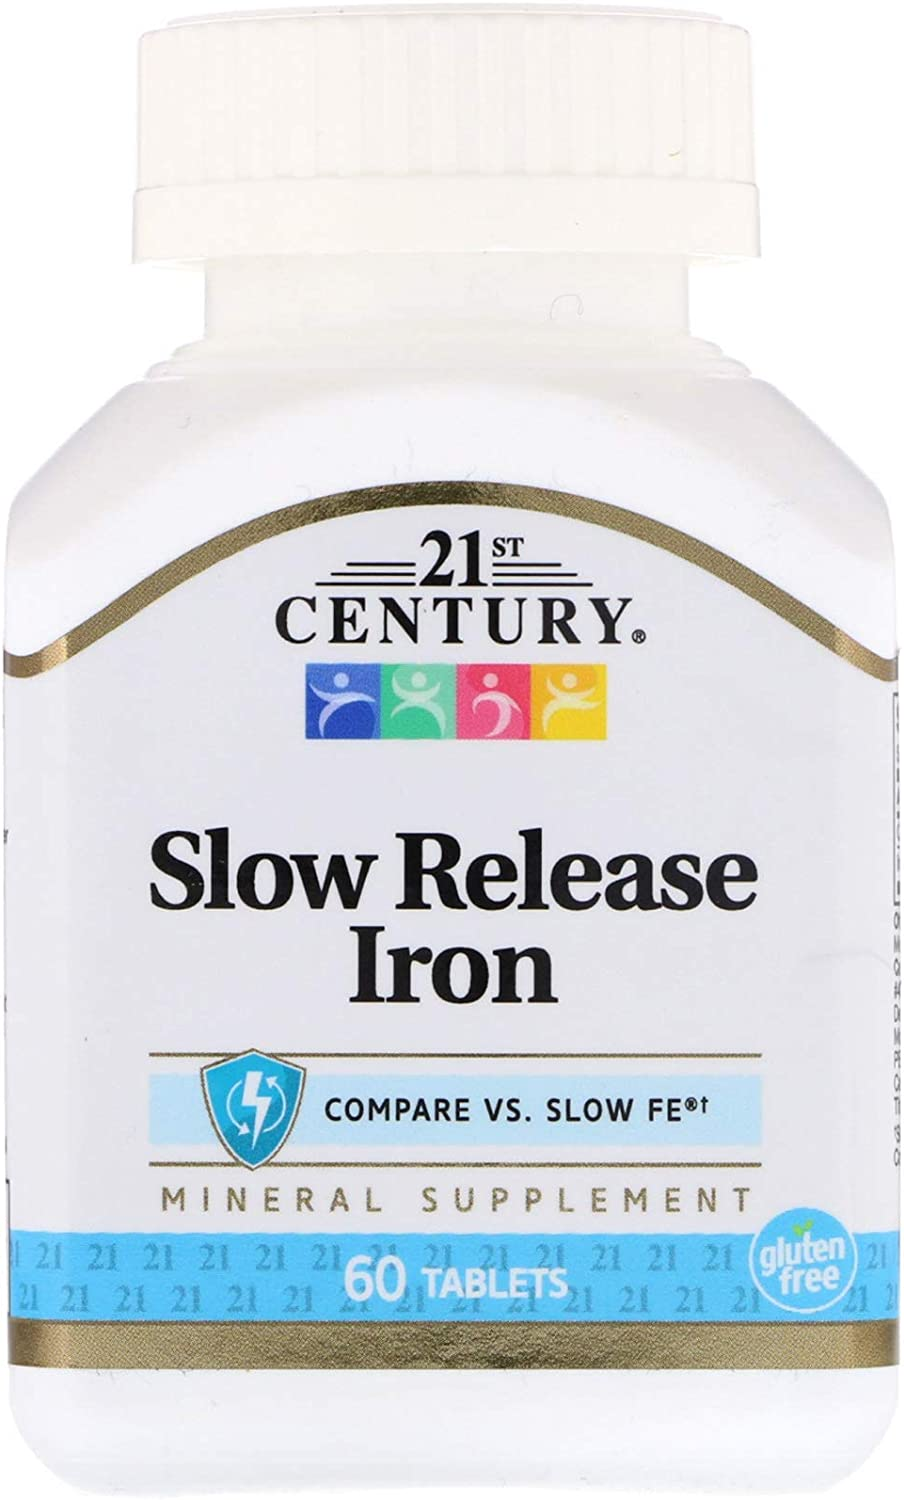 Gorgeous 21st Century Slow Release 60 Discount is also underway Tablets Iron